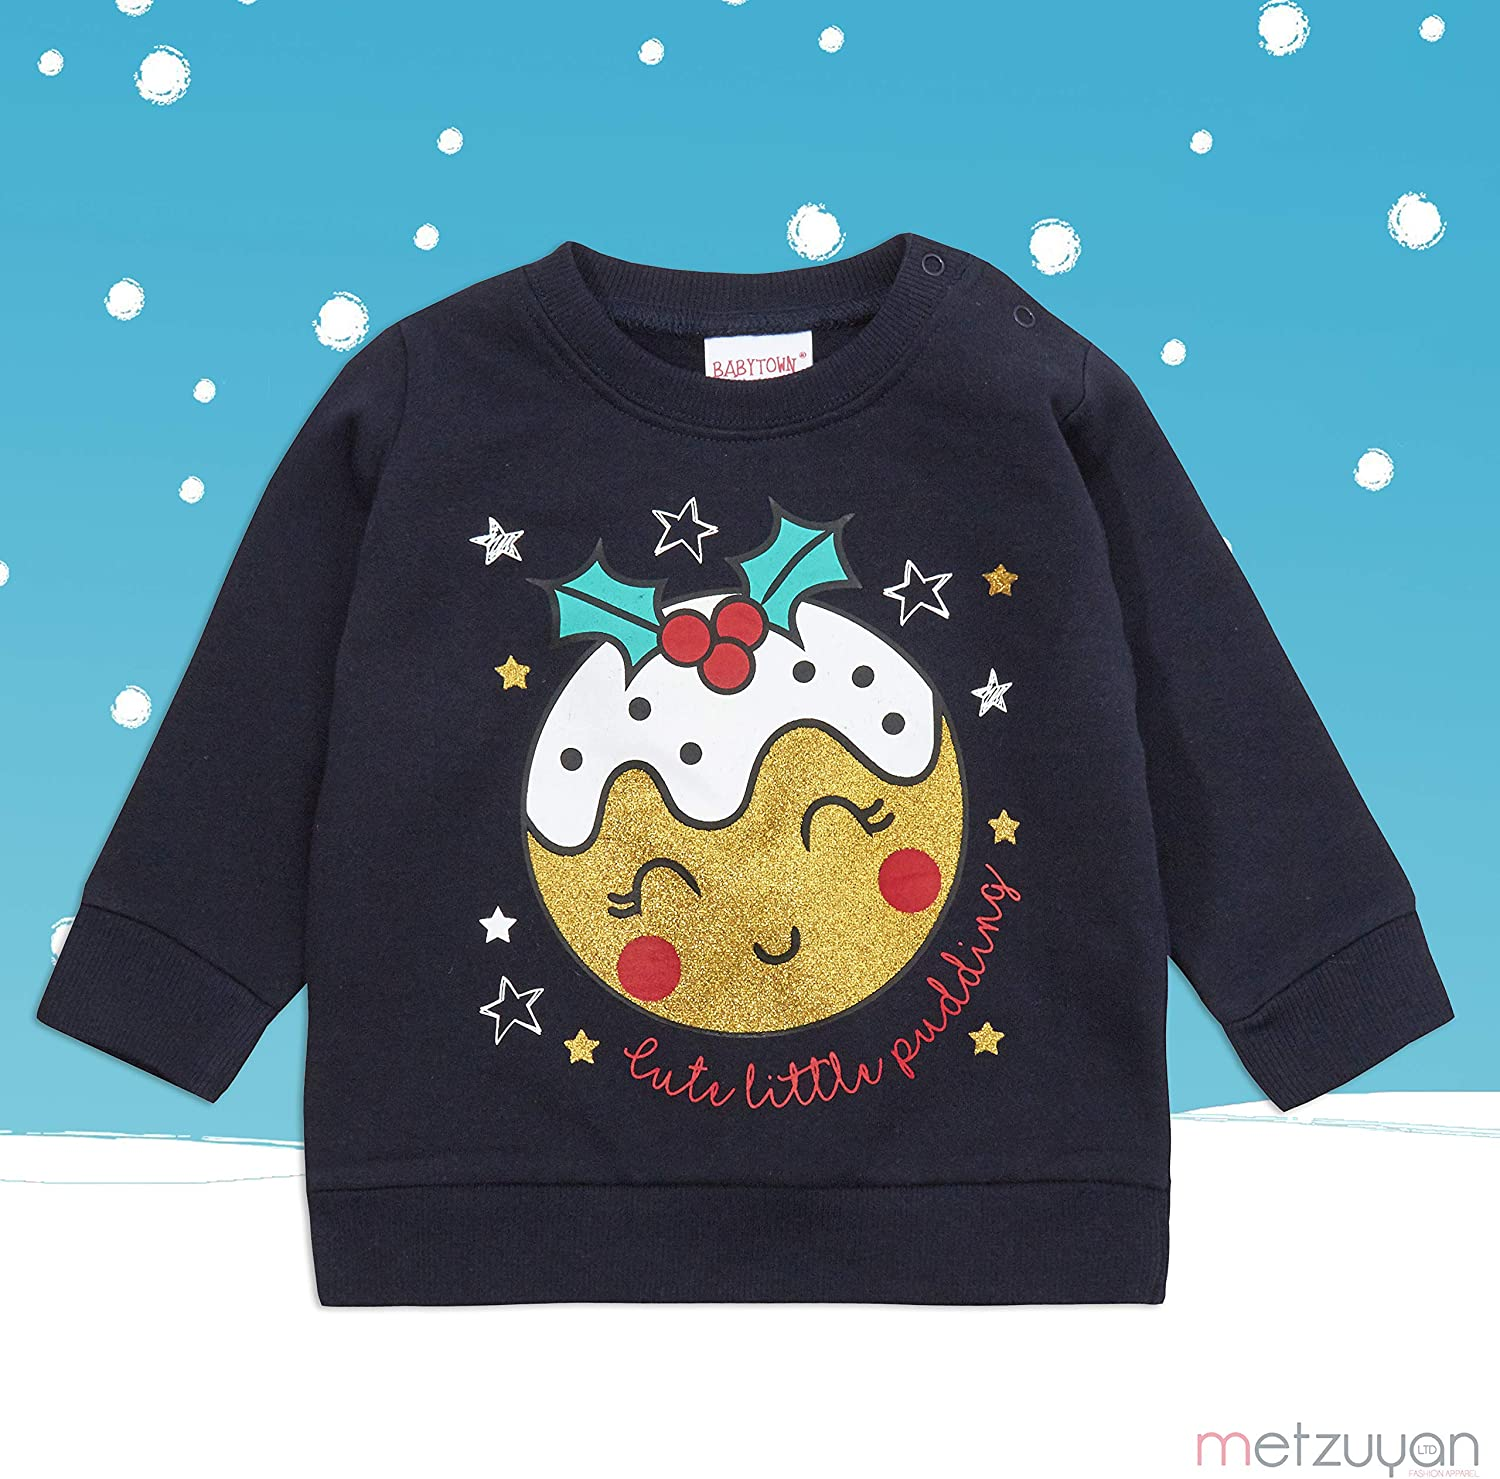 Metzuyan Baby Girls and Boys Unisex Xmas Printed Christmas Jumpers 100/% Cotton Sweaters